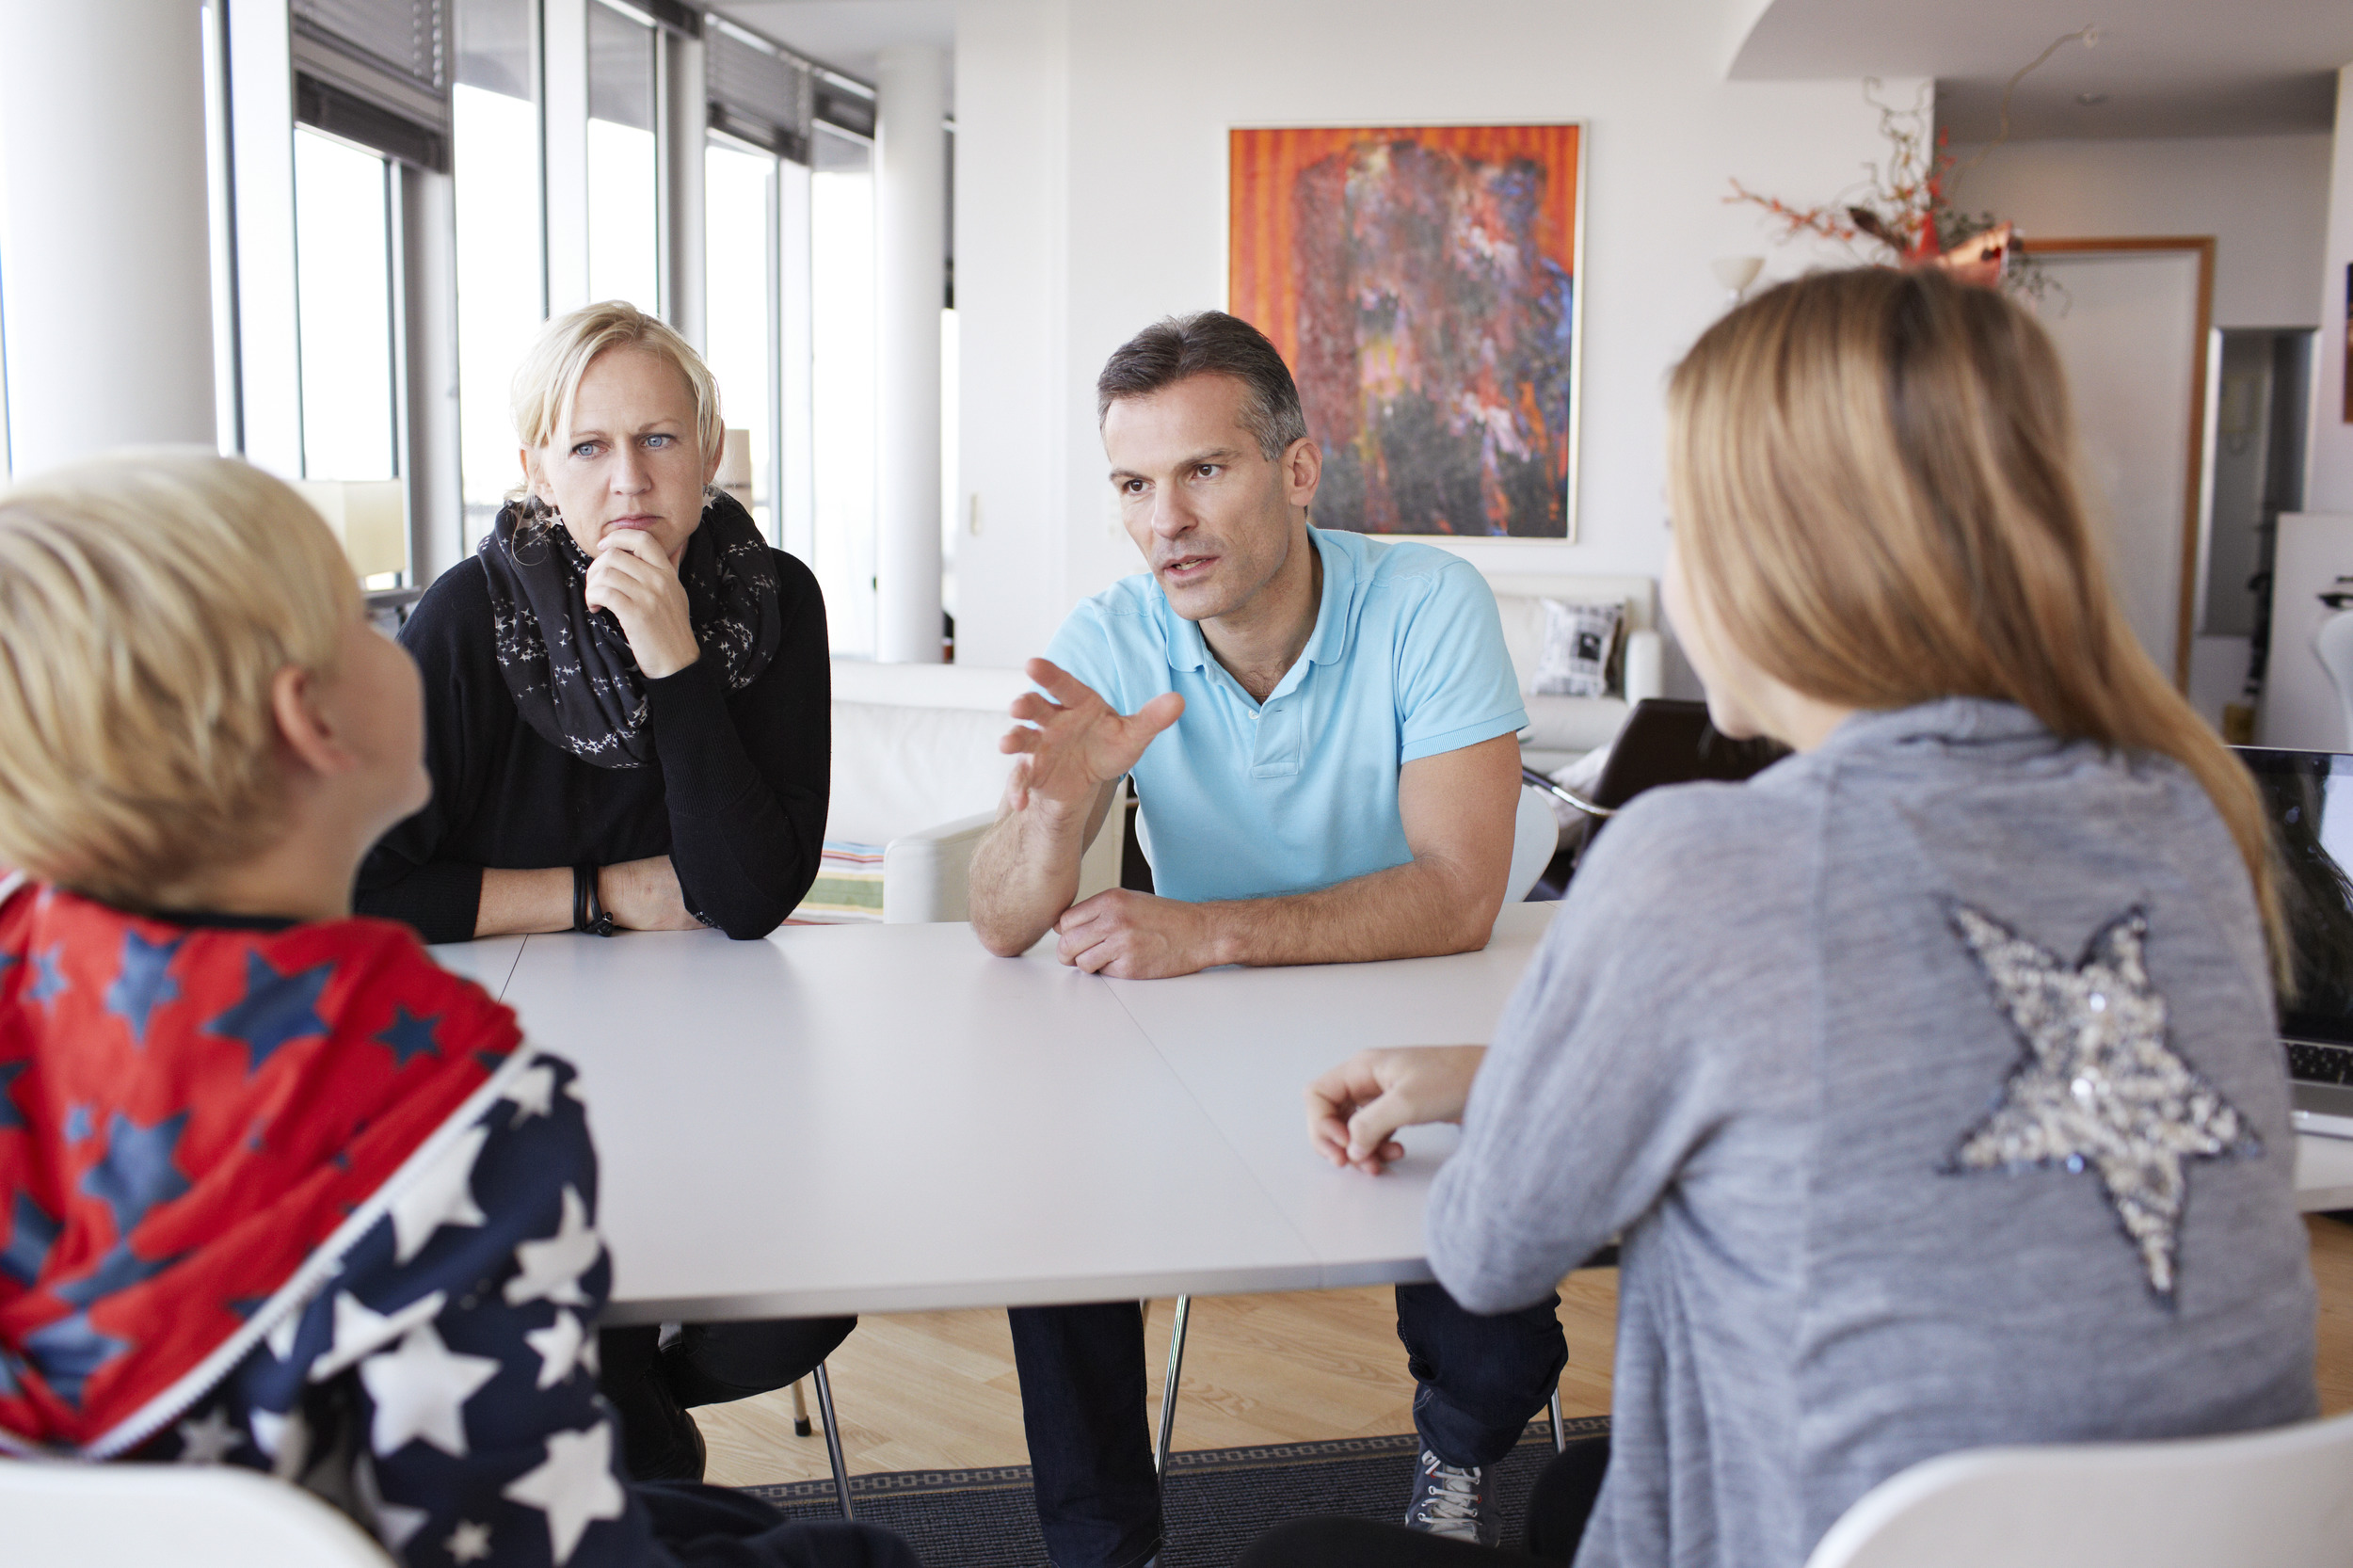 6 tips for planning home defense includes a family meeting to discuss